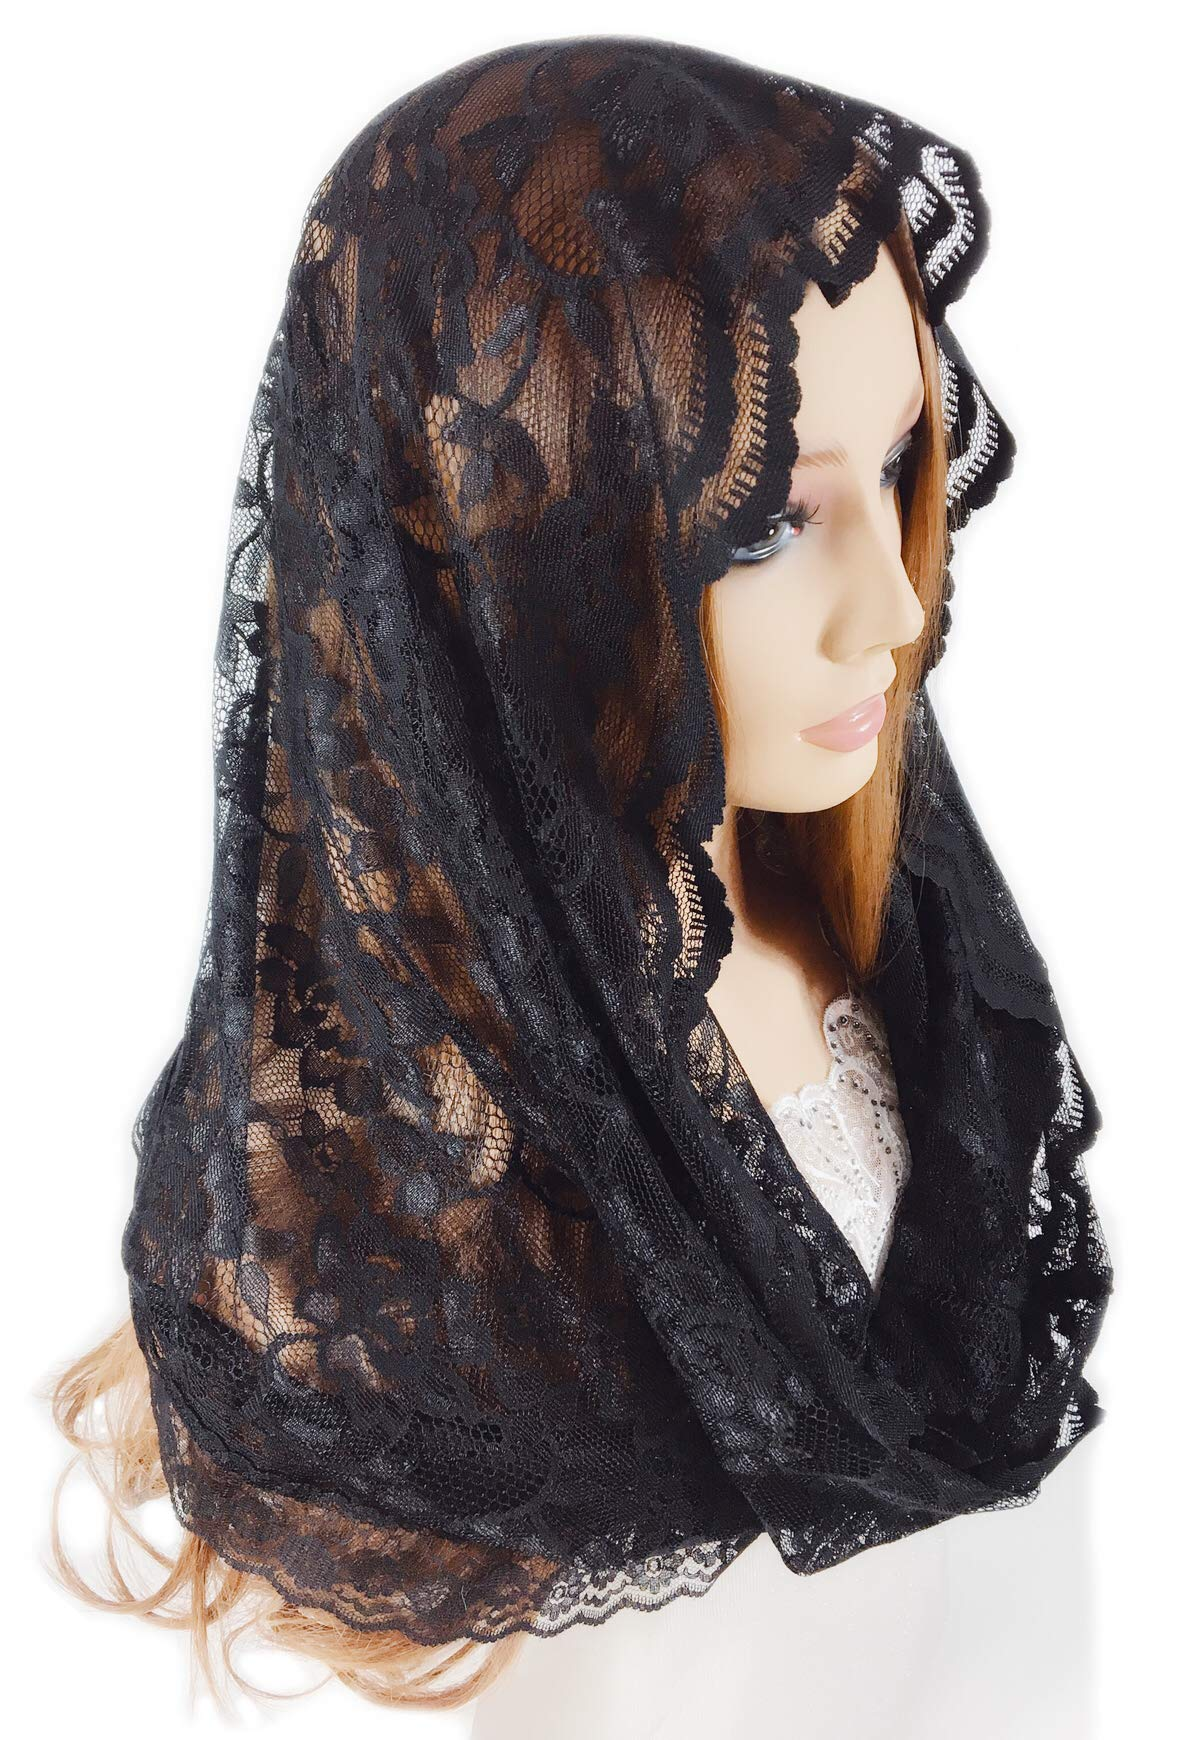 Pamor Infinity Floral Veils Scarf Catholic Church Veil Head Covering Latin Mass Lace Mantilla with Free Hairclip (black) by PAMOR (Image #3)